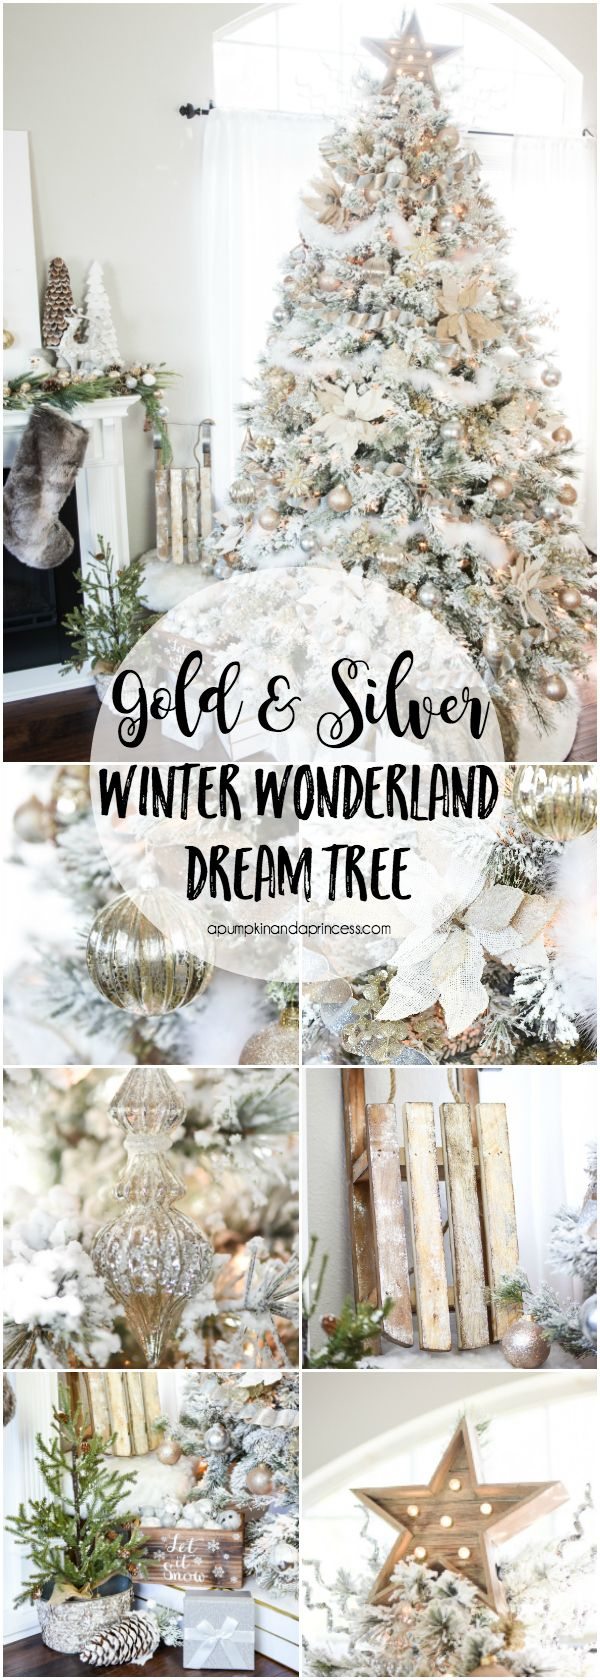 White and gold christmas decorating ideas - How To Decorate A Flocked Gold And Silver Winter Wonderland Christmas Tree Michaels Dream Tree